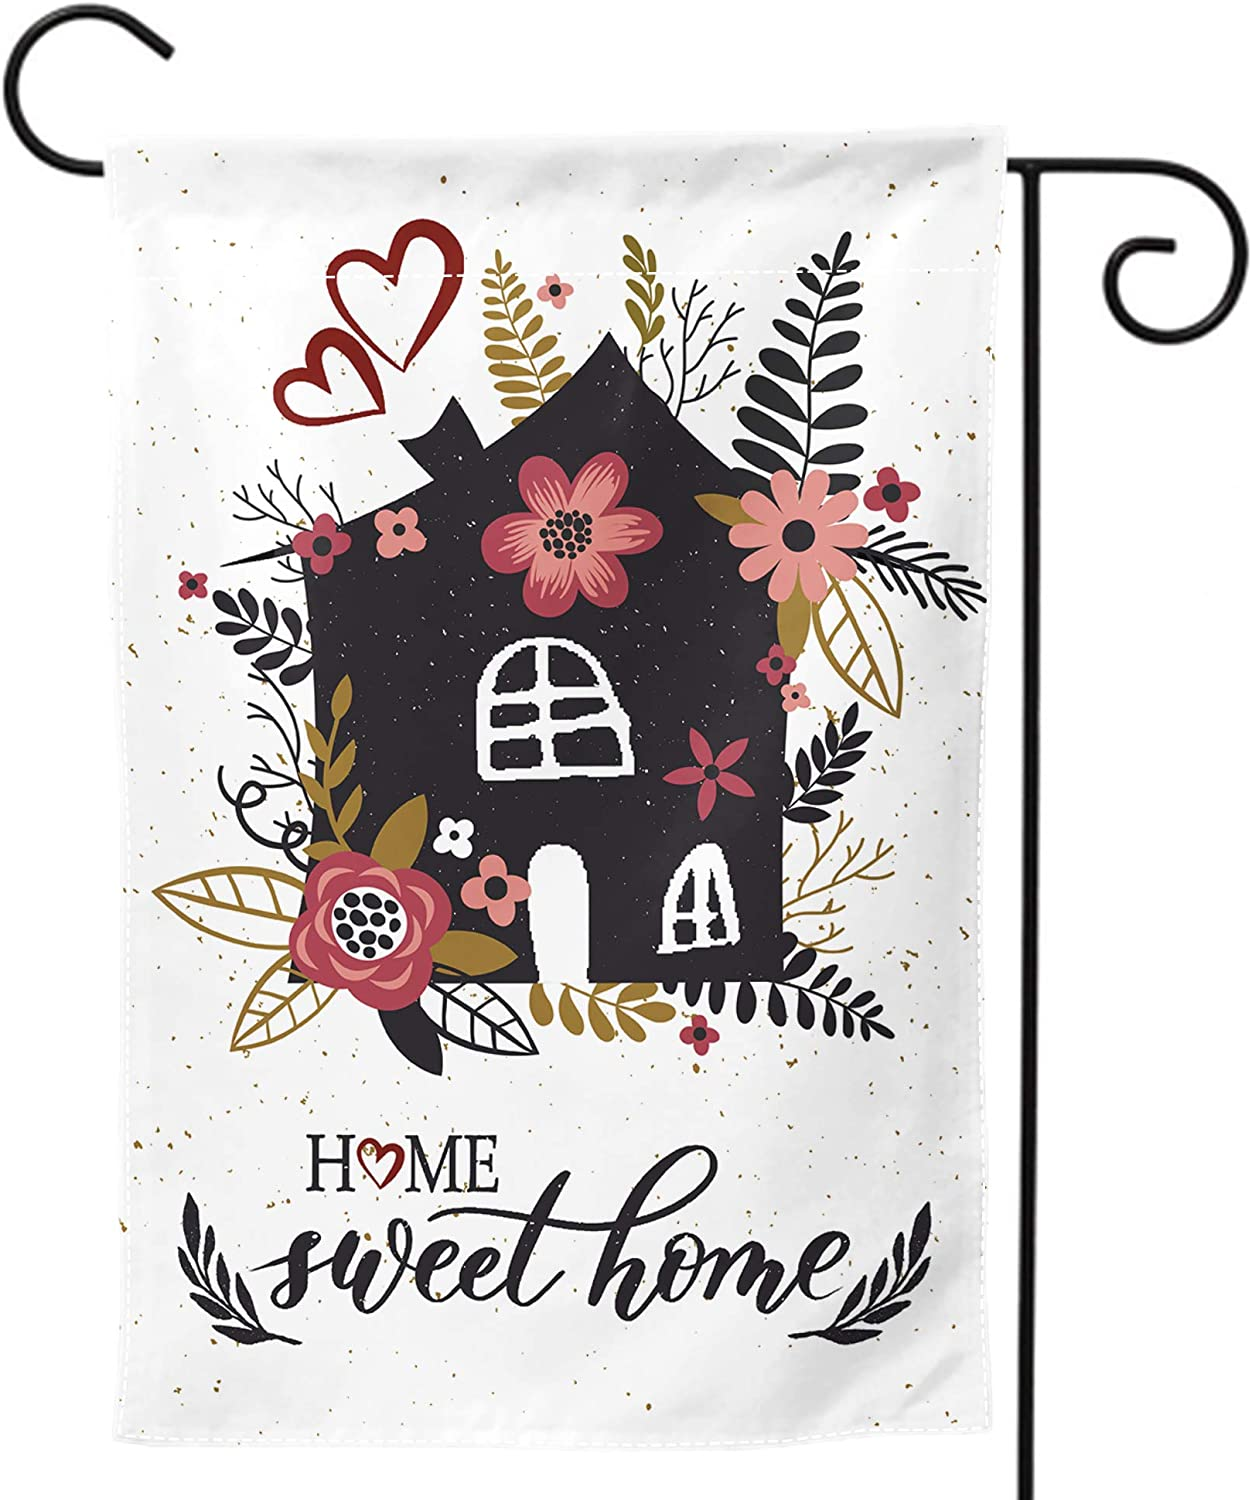 Granbey Home Sweet Home Garden Flag Color Flower Garden Flags Colorful Flowers Floral Print Banner Red Florals House Leaves Print Flag Pretty Four Seasons Garden Flag Rustic Farmhouse Decor 12x18in